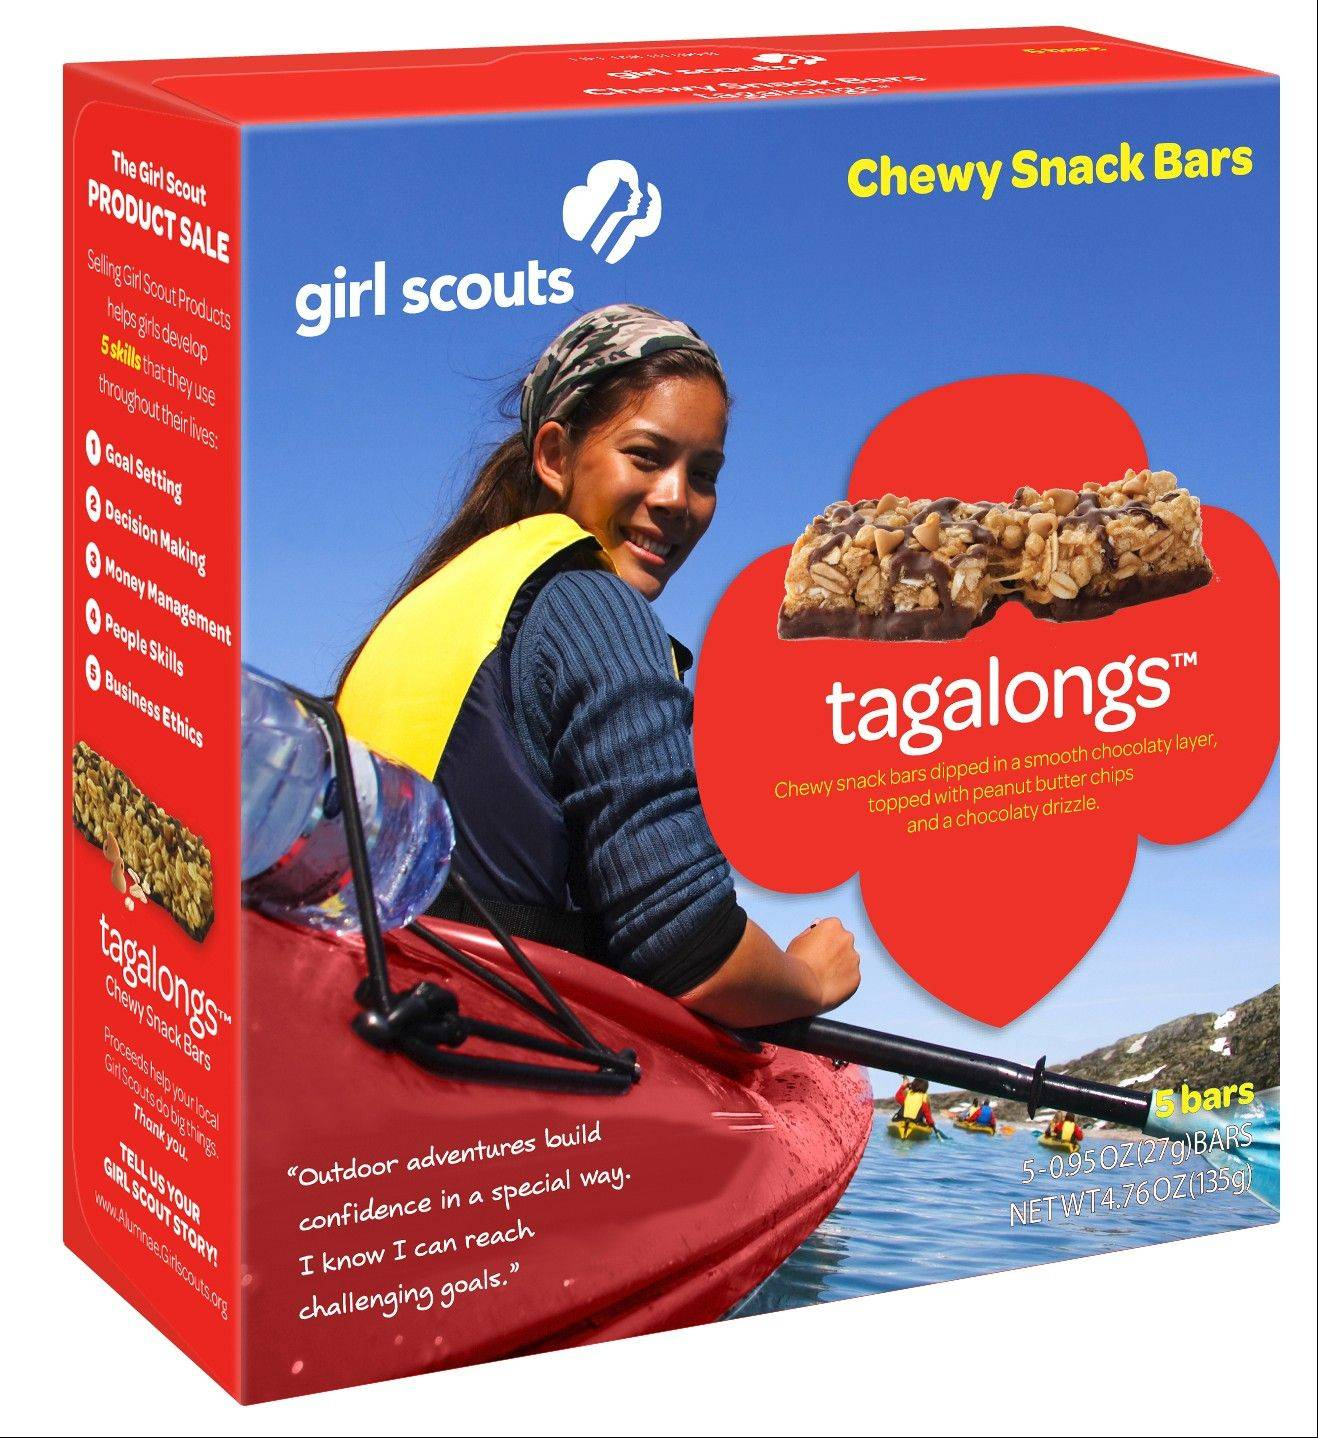 Girl Scouts of Northern Illinois was chosen as one of only six councils across the nation to pilot two varieties of Girl Scout Snack Bars during the 2013 Girl Scout Cookie Program -- Tagalongs and Double Dutch snack bars.